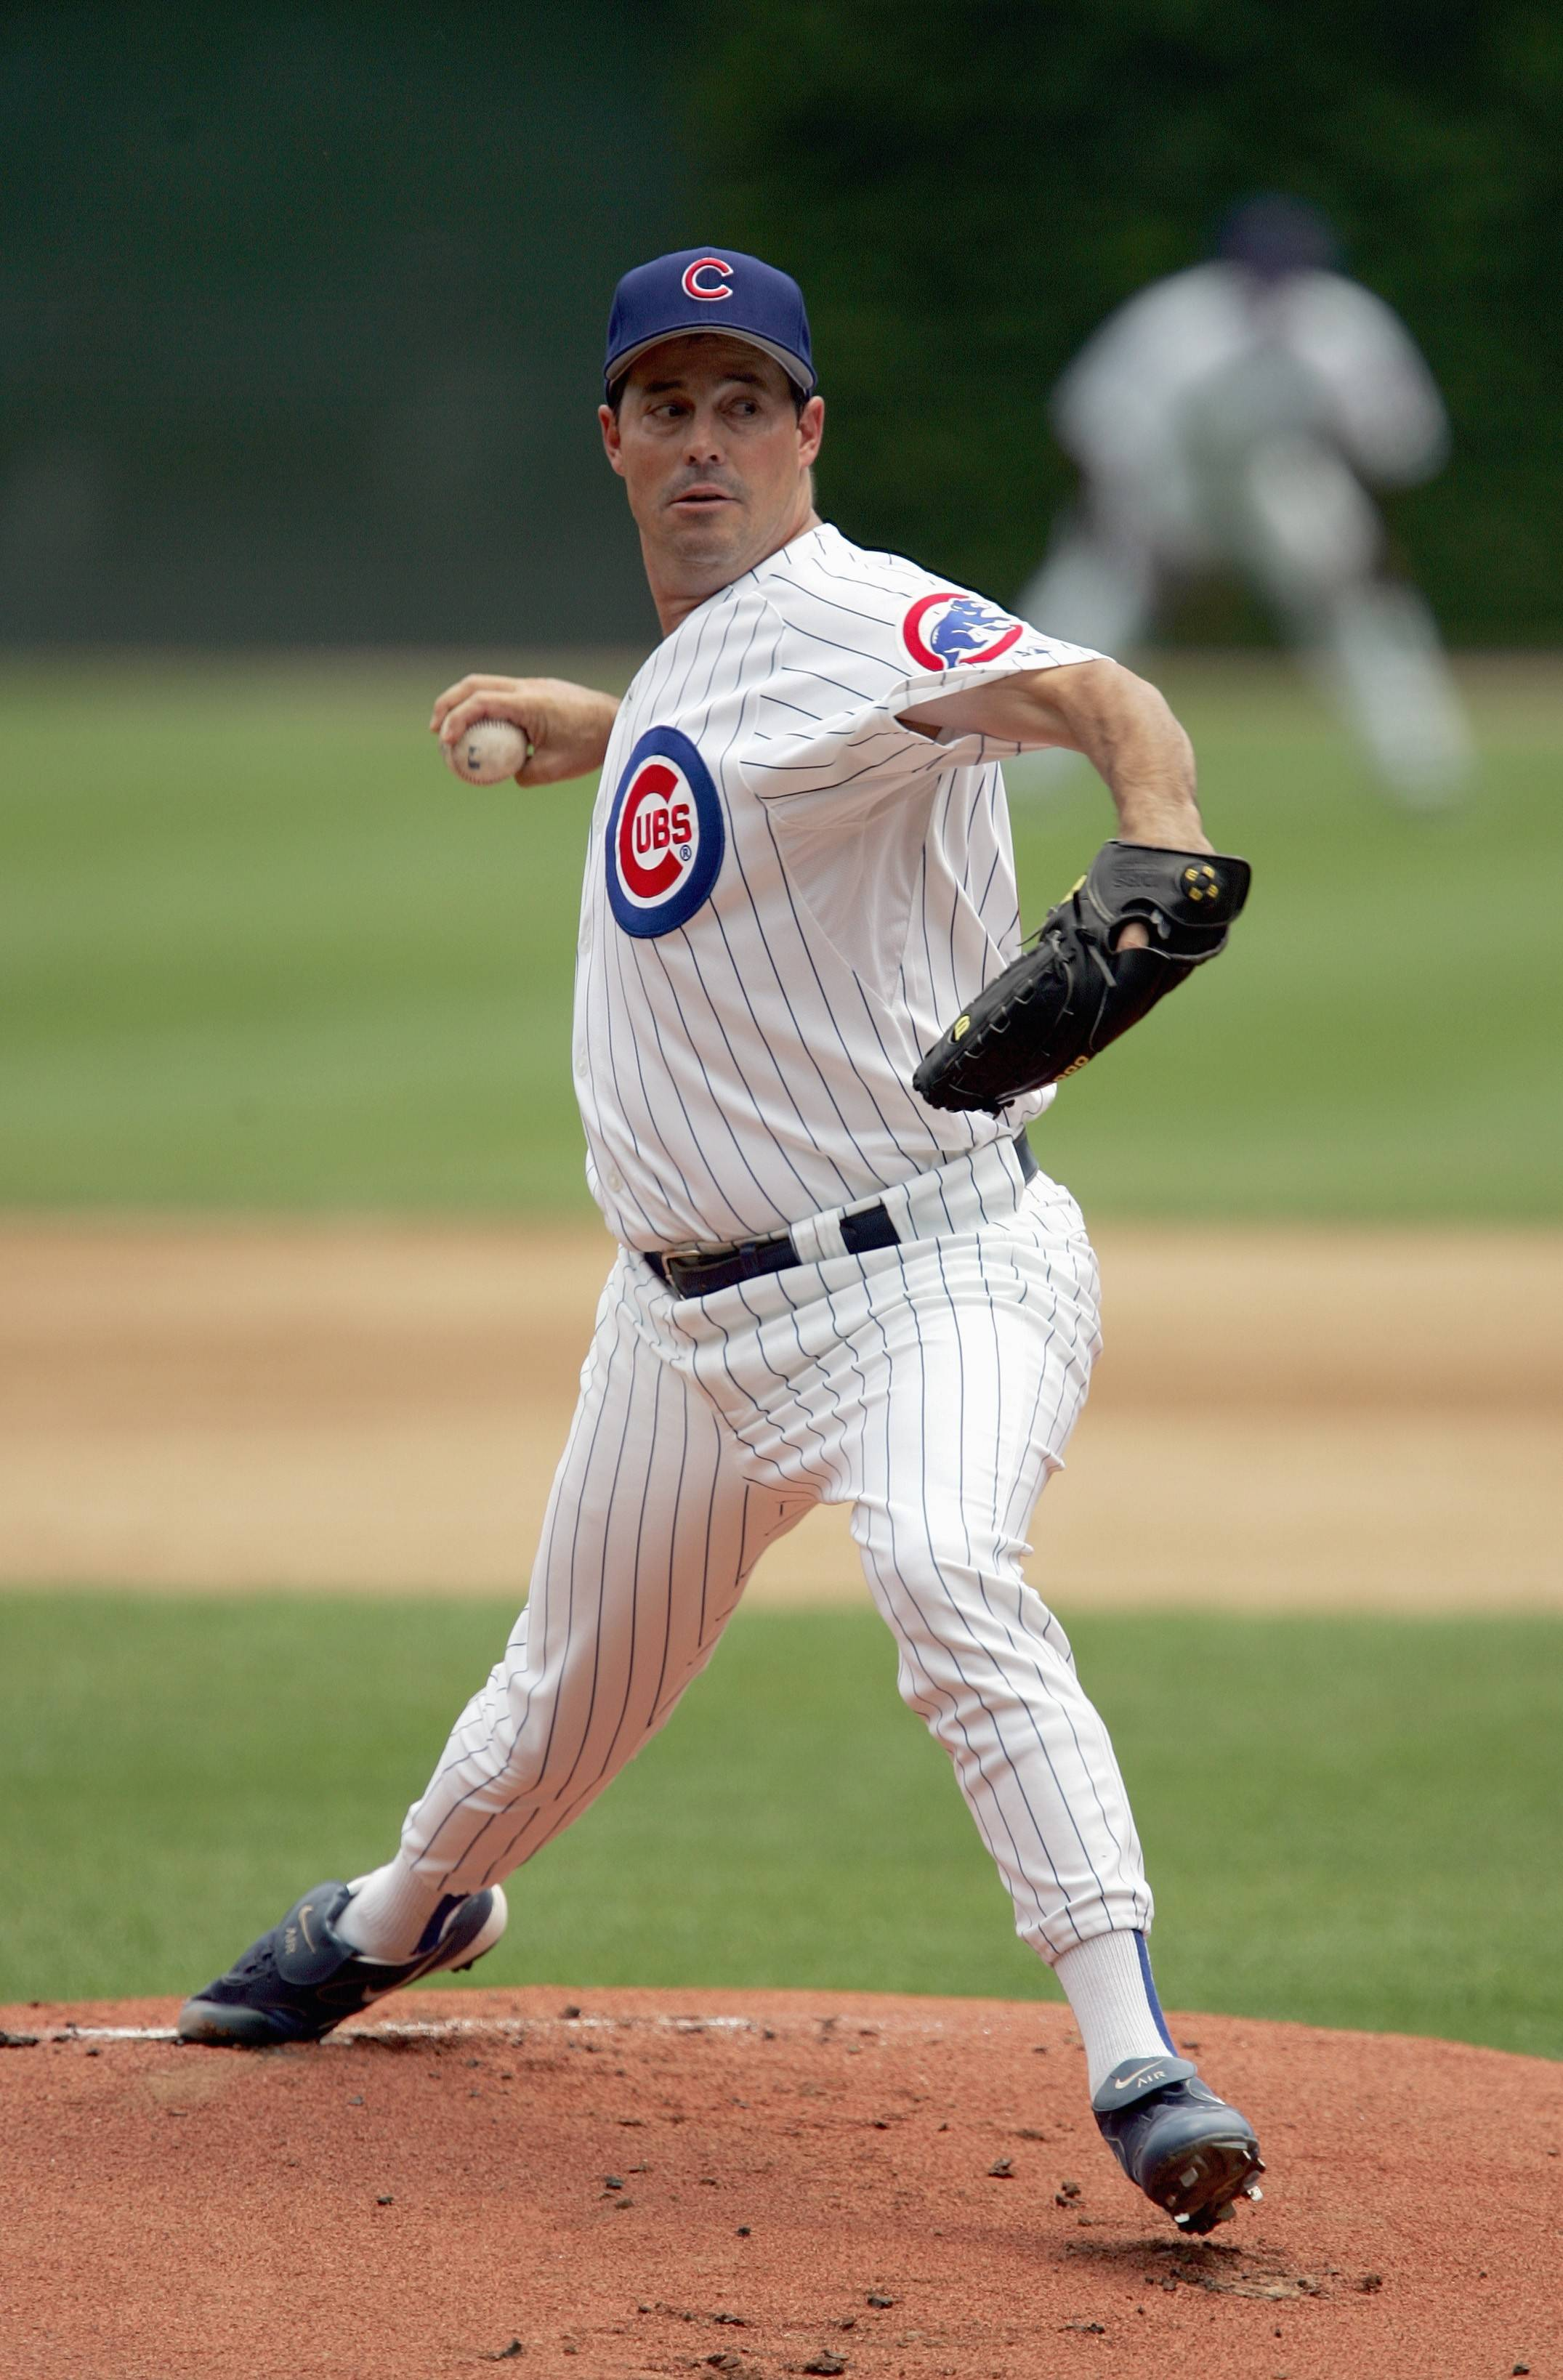 Greg Maddux is one of the many sports superstars who will meet with fans at the Fanatics Authentic Sports Spectacular in Rosemont.